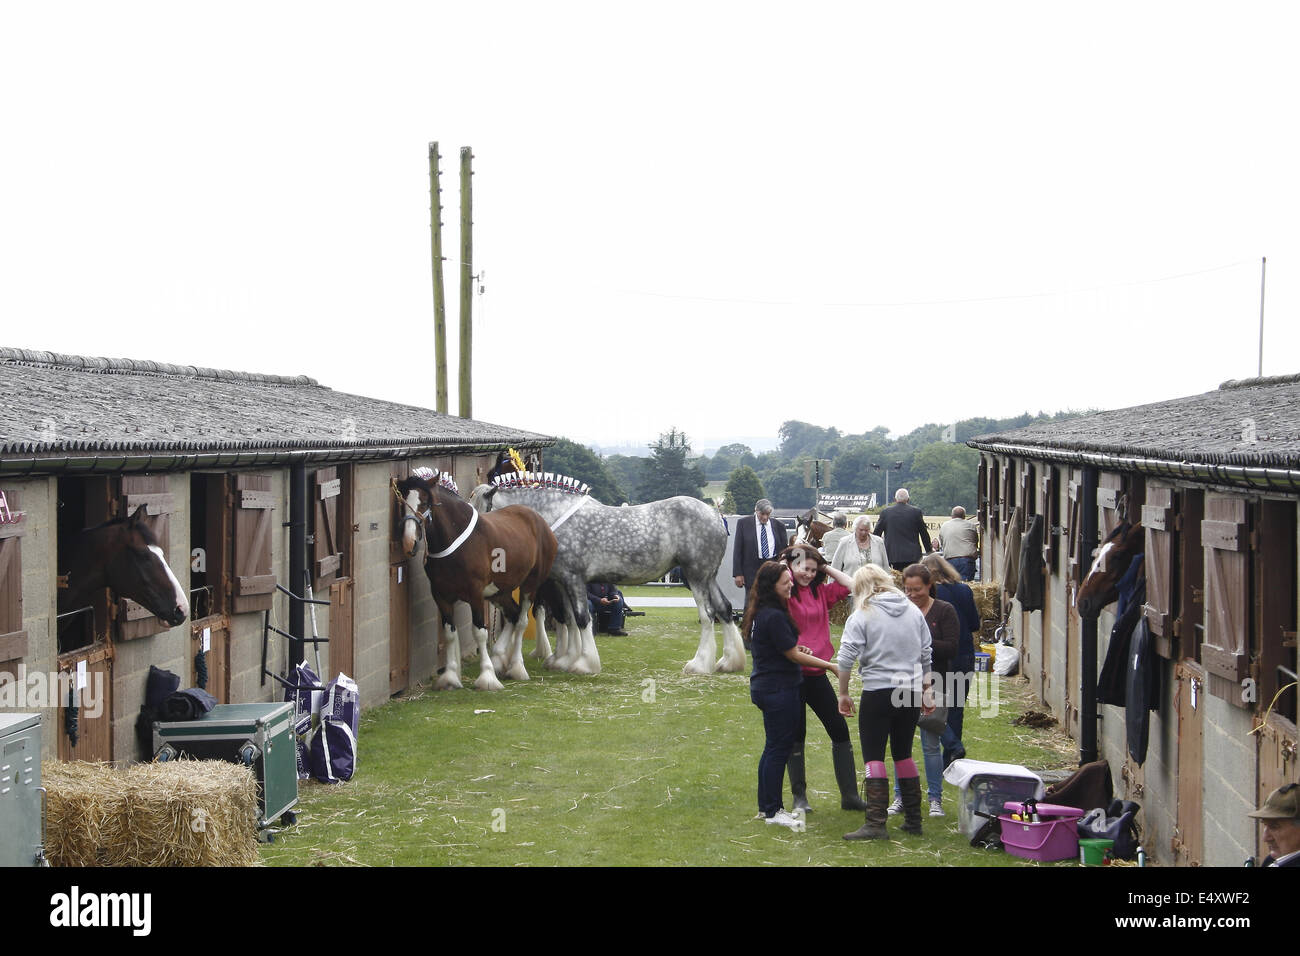 stables at Great Yorkshire Show, Harrogate, Yorkshire, UK - Stock Image